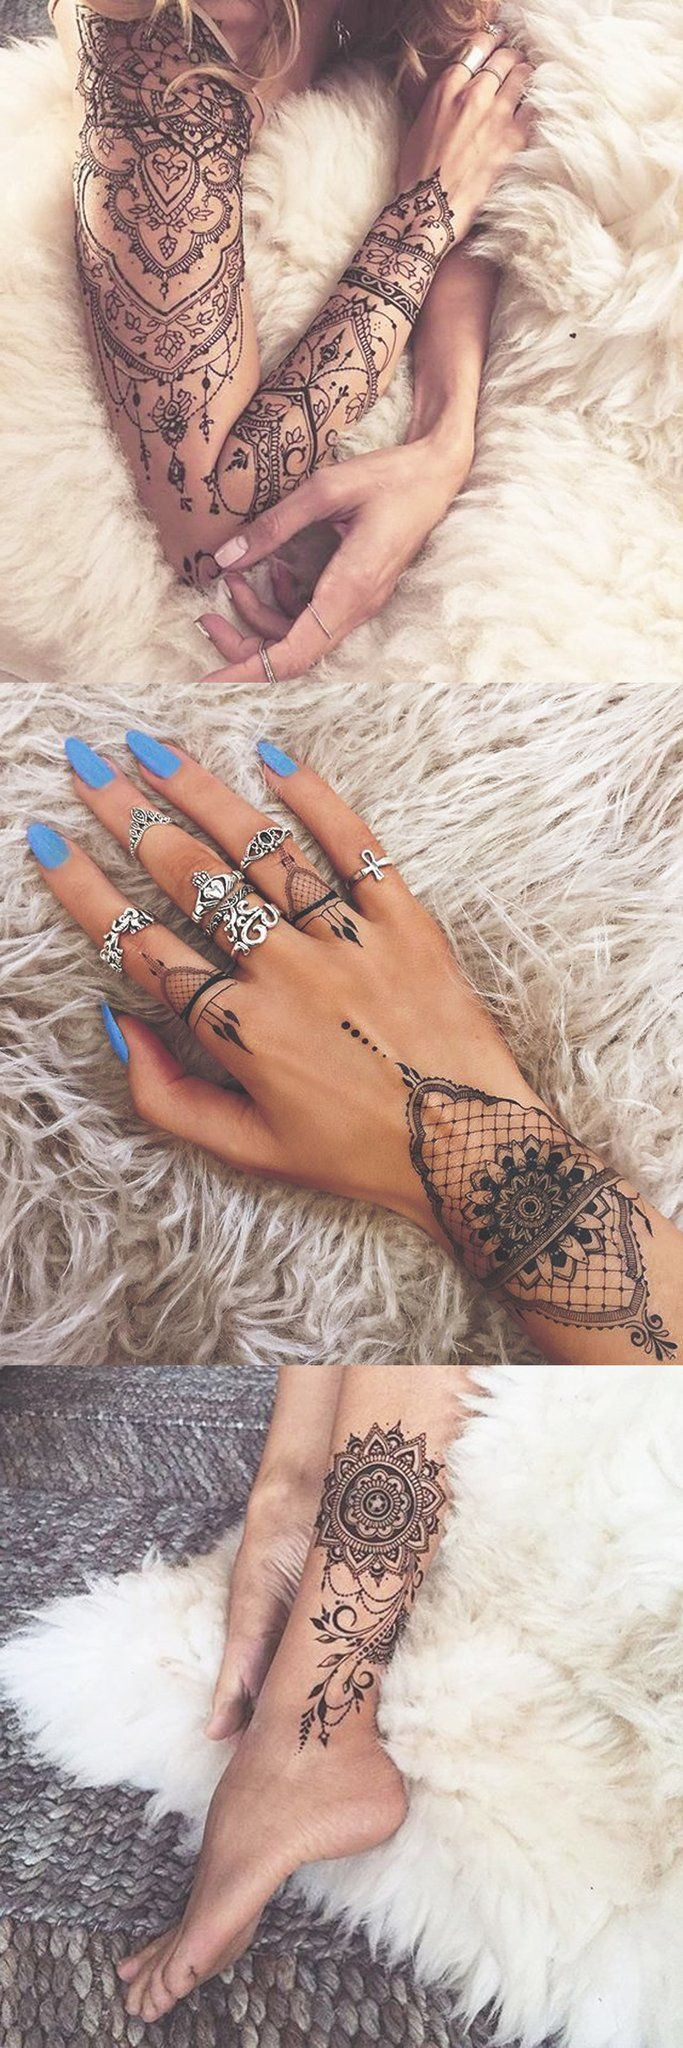 Sacred Geometric Mandala Tattoo Ideas for Women - Lace Black Henna Lotus Tatt - Full Arm Sleeve Tat - Chandelier Tatouage - MyBodiArt.com